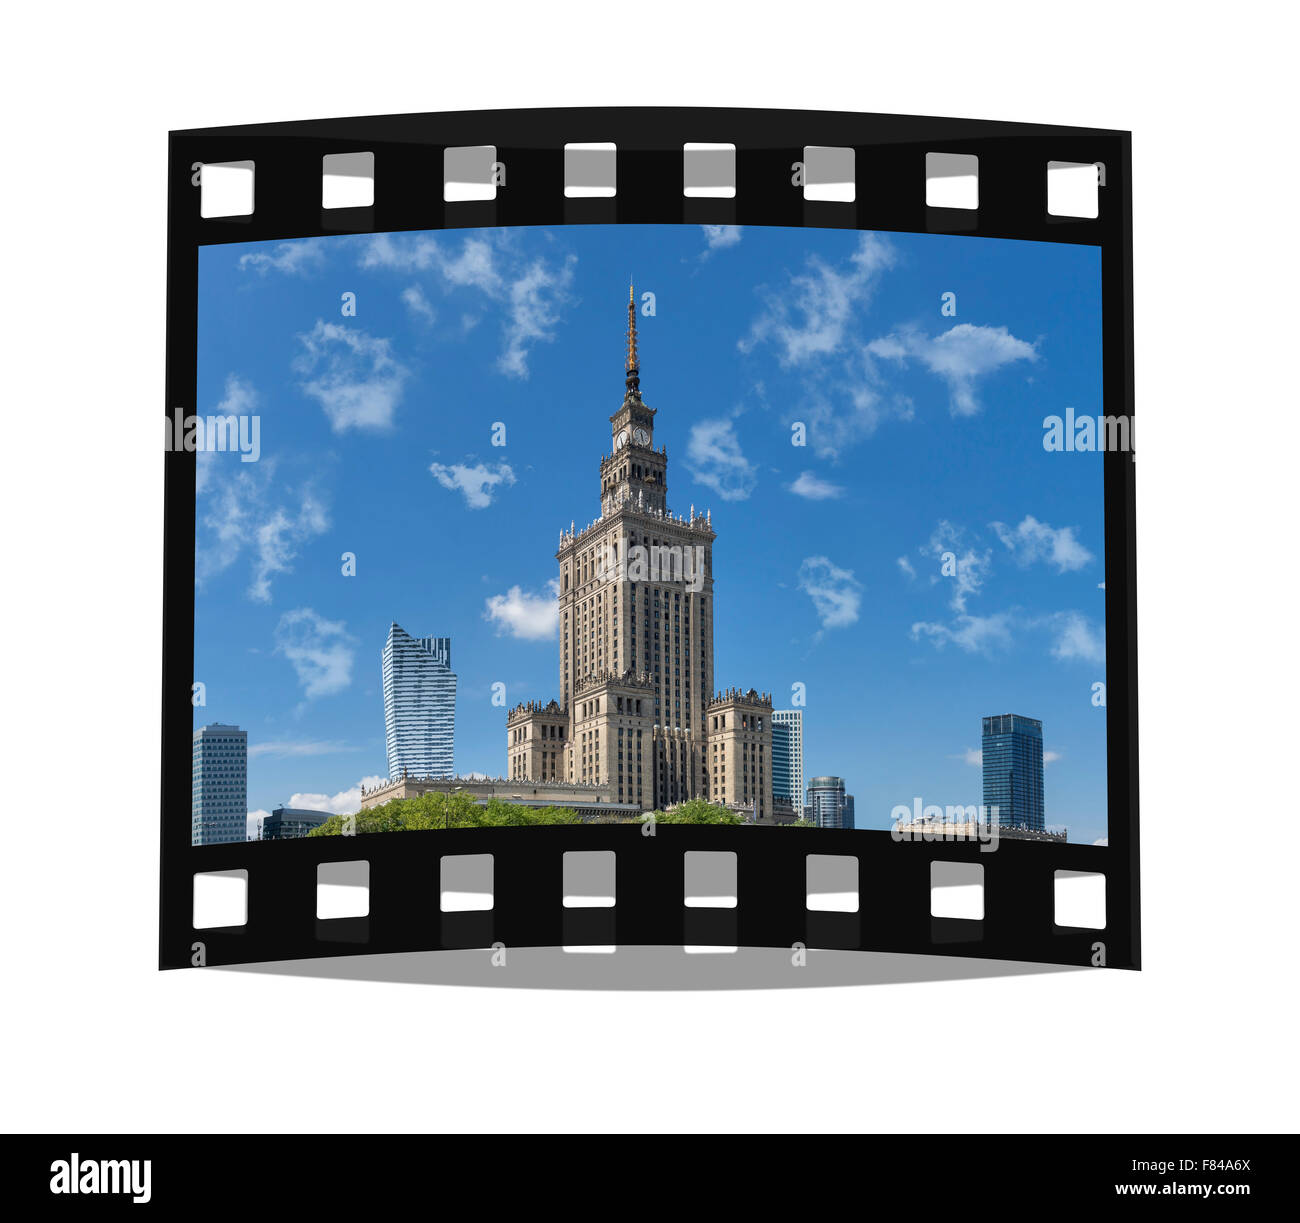 The Palace of Culture and Science was built from 1952 to 1955. The building is 231 meters high, Warsaw, Masovian, Stock Photo